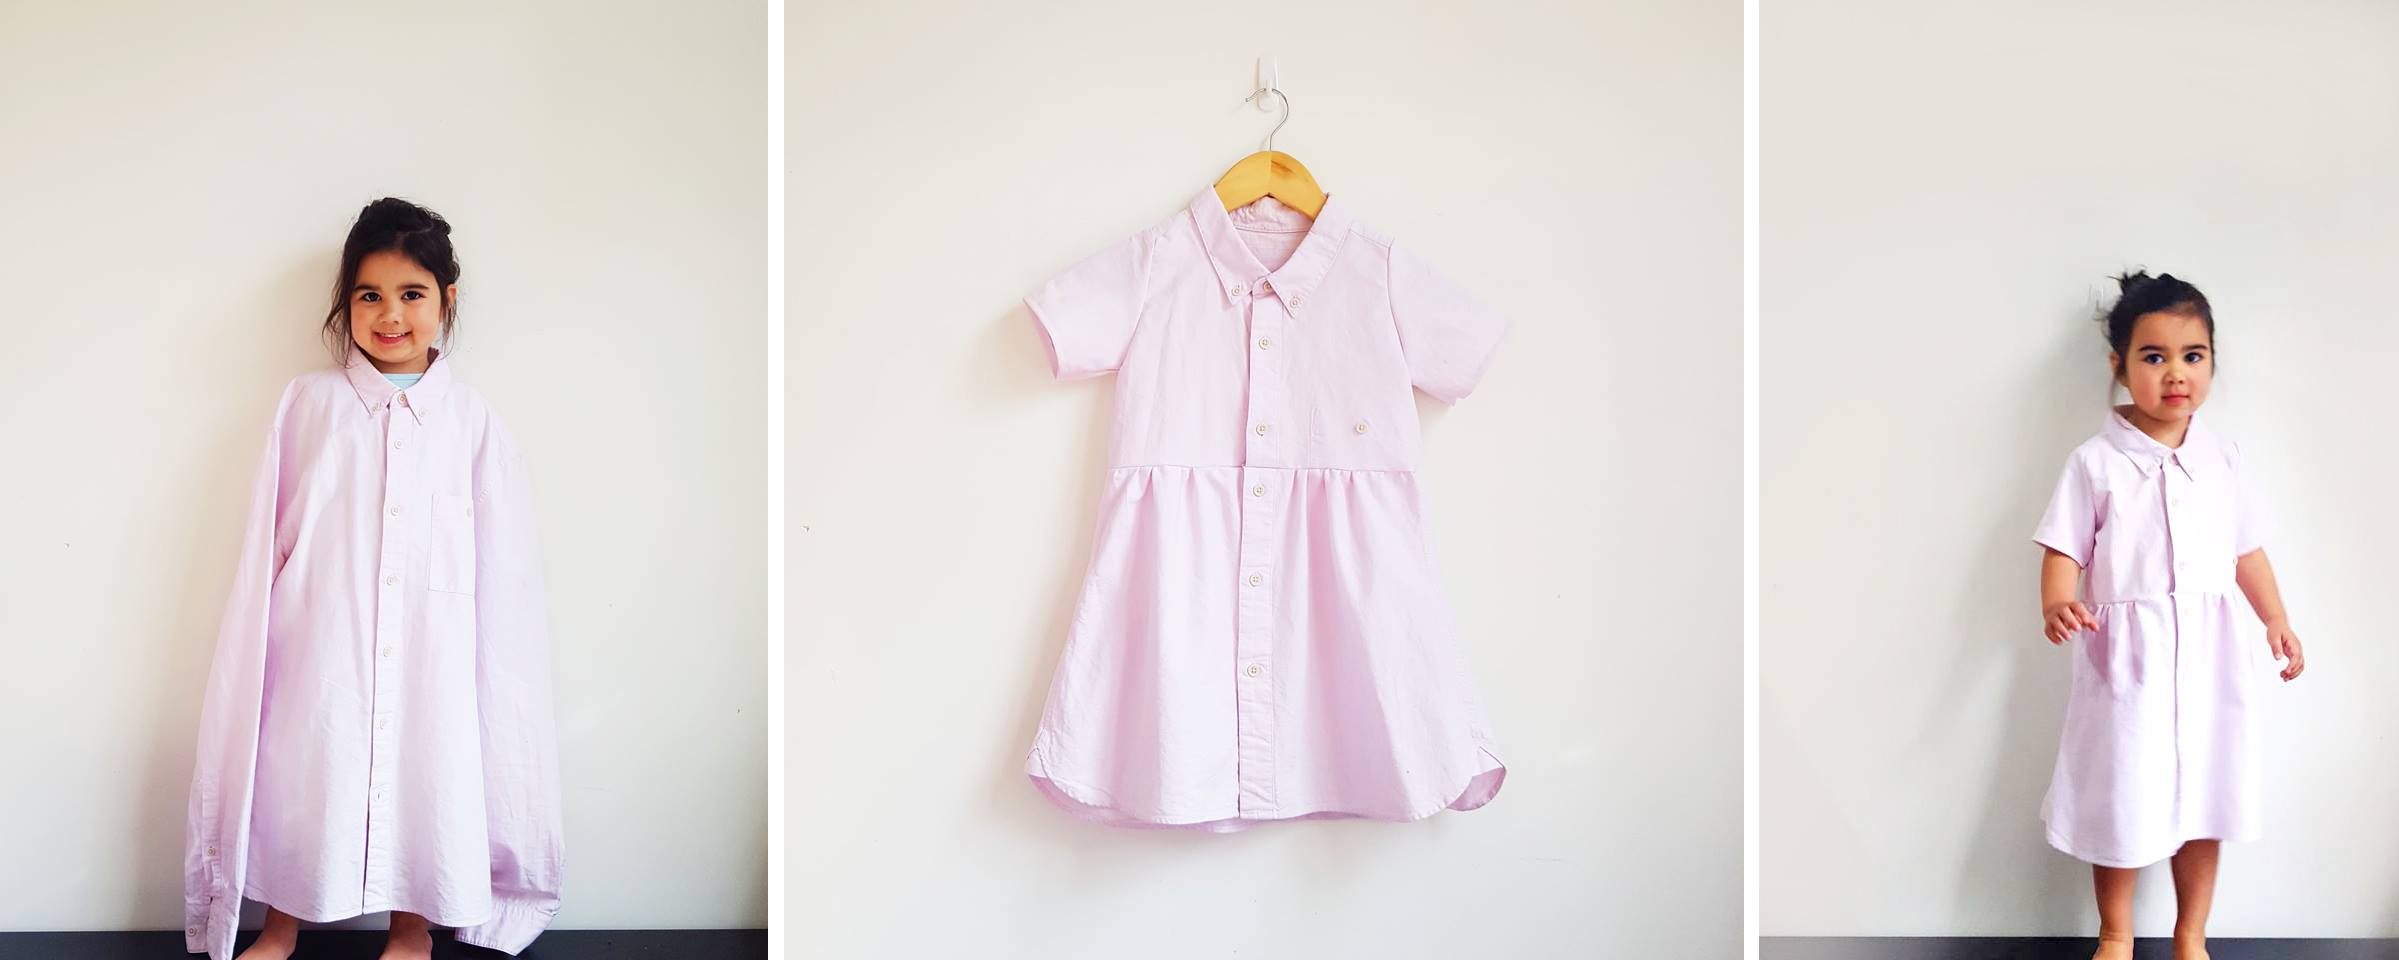 The transition of a pink men's business shirt into a fun and functional dress. Left: A little girl wearing the oversized original shirt. Middle: The shirt repurposed as a feminine pink collared dress. Right: The same little girl wearing the better-fitting new garment.